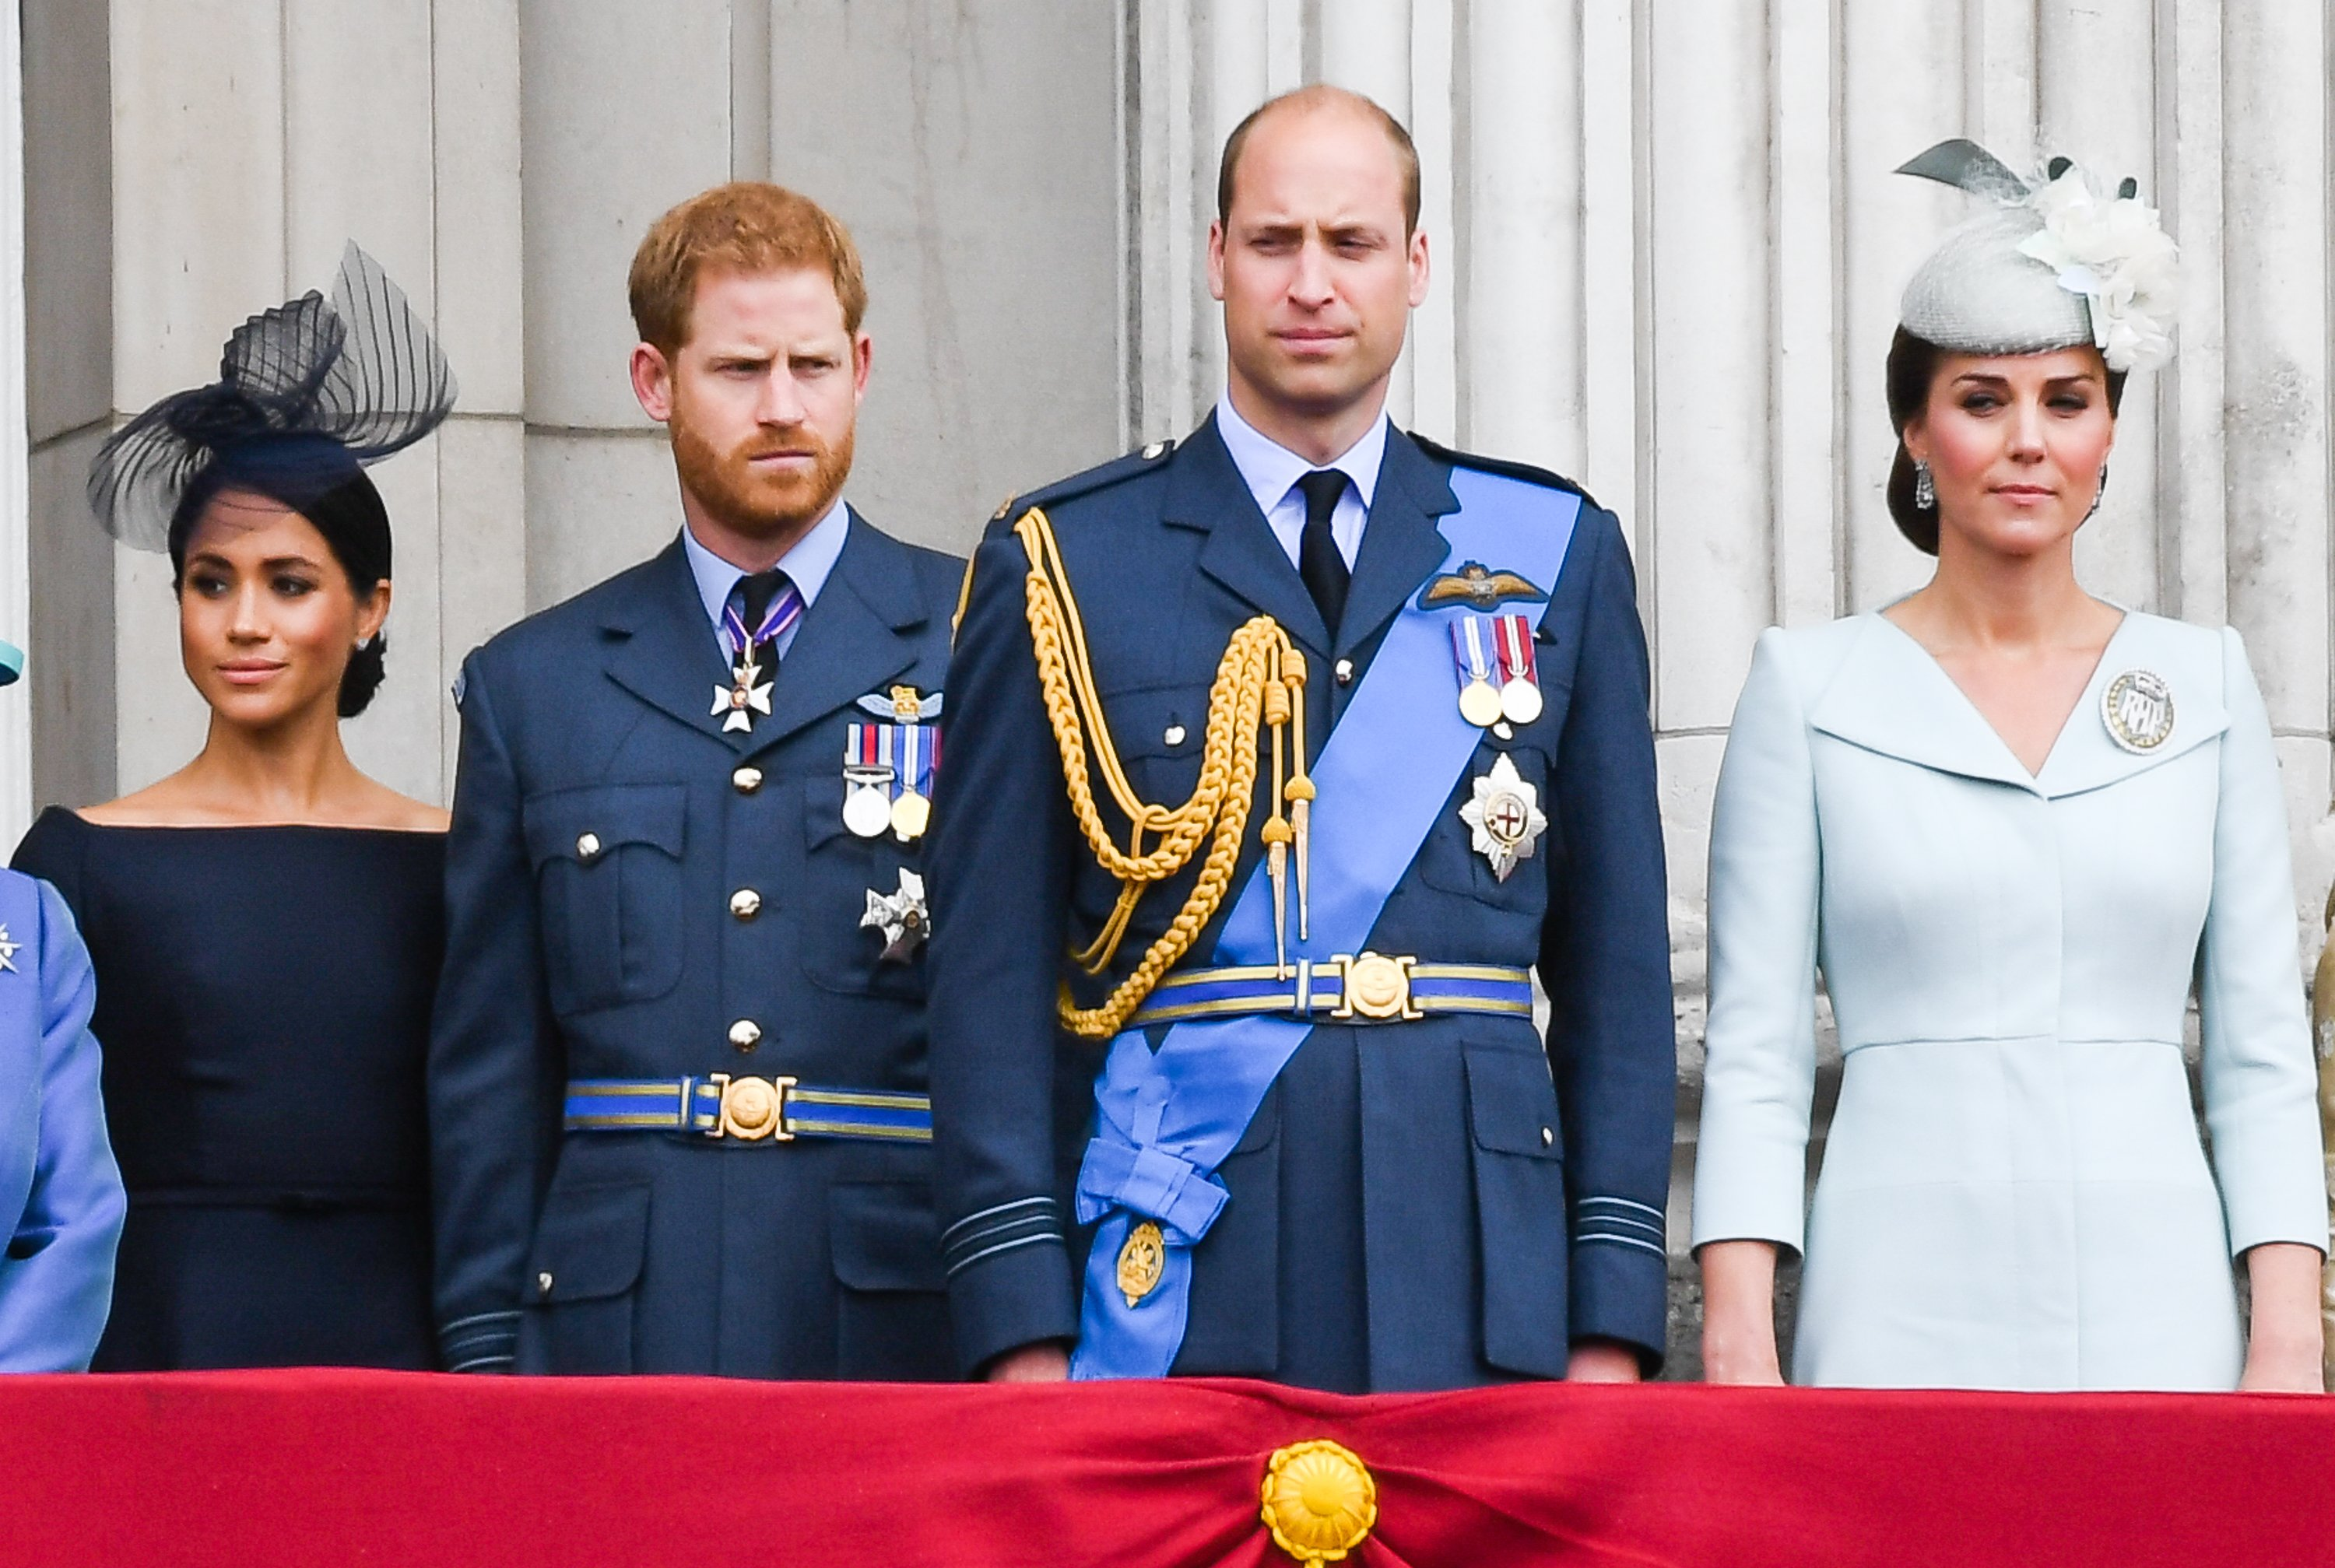 Image Credits: Getty Images / Anwar Hussein / WireImage   Meghan, Duchess of Sussex, Prince Harry, Duke of Sussex, Prince William, Duke of Cambridge and Catherine, Duchess of Cambridge stand on the balcony of Buckingham Palace to view a flypast to mark the centenary of the Royal Air Force (RAF) on July 10, 2018 in London, England.